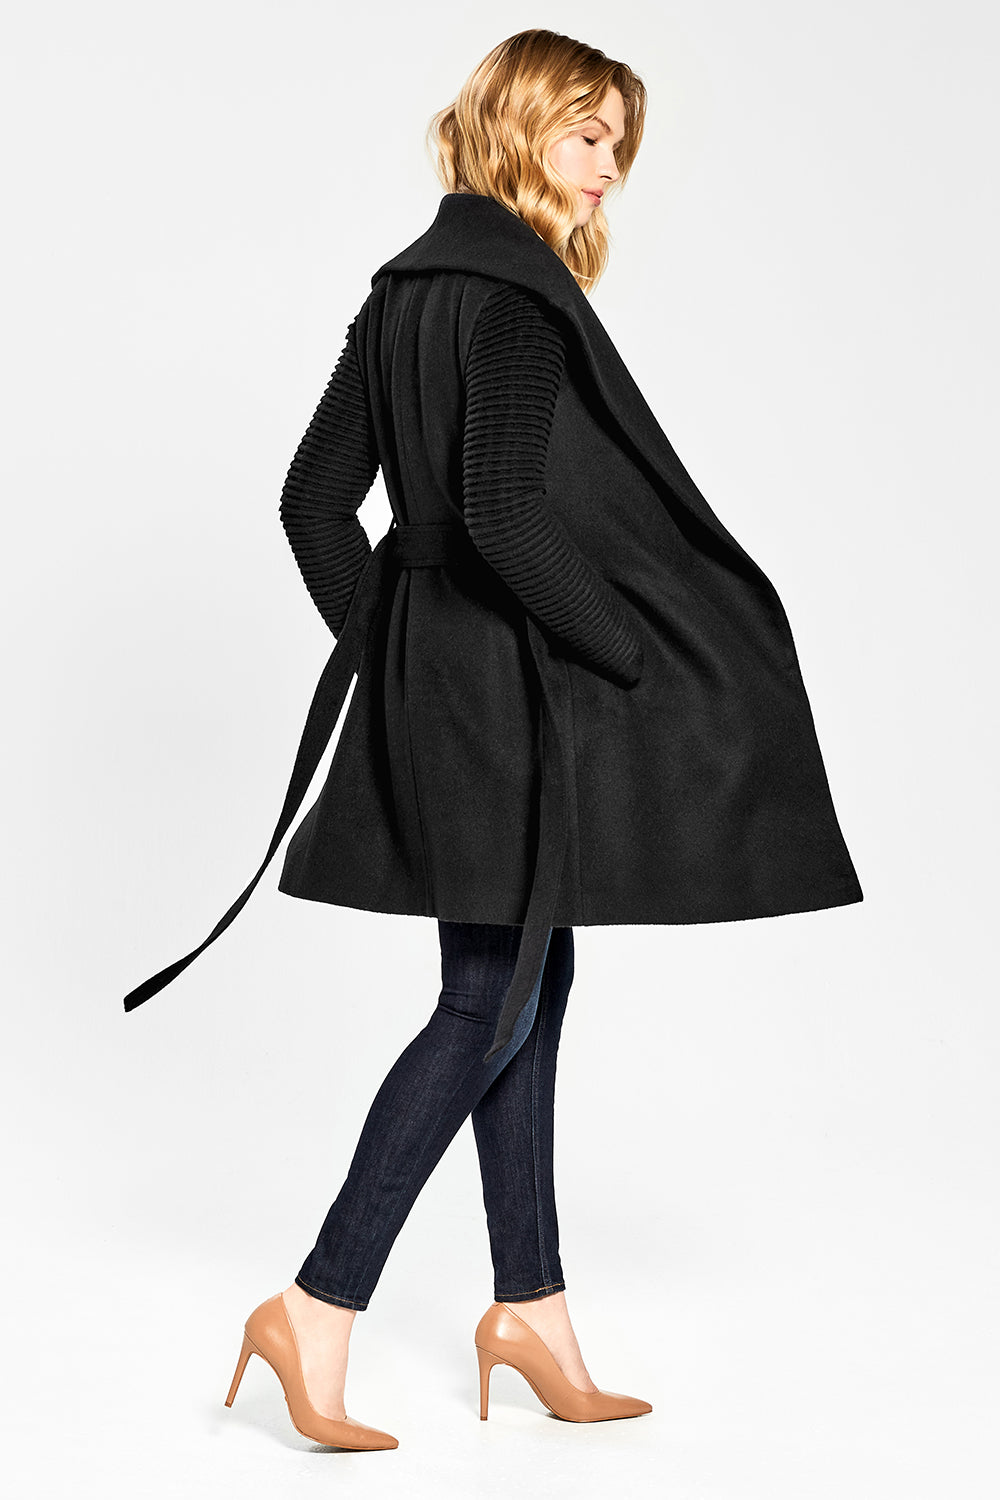 Sentaler Mid Length Shawl Collar Wrap Coat with Ribbed Sleeves featured in Baby Alpaca and available in Black. Seen open.